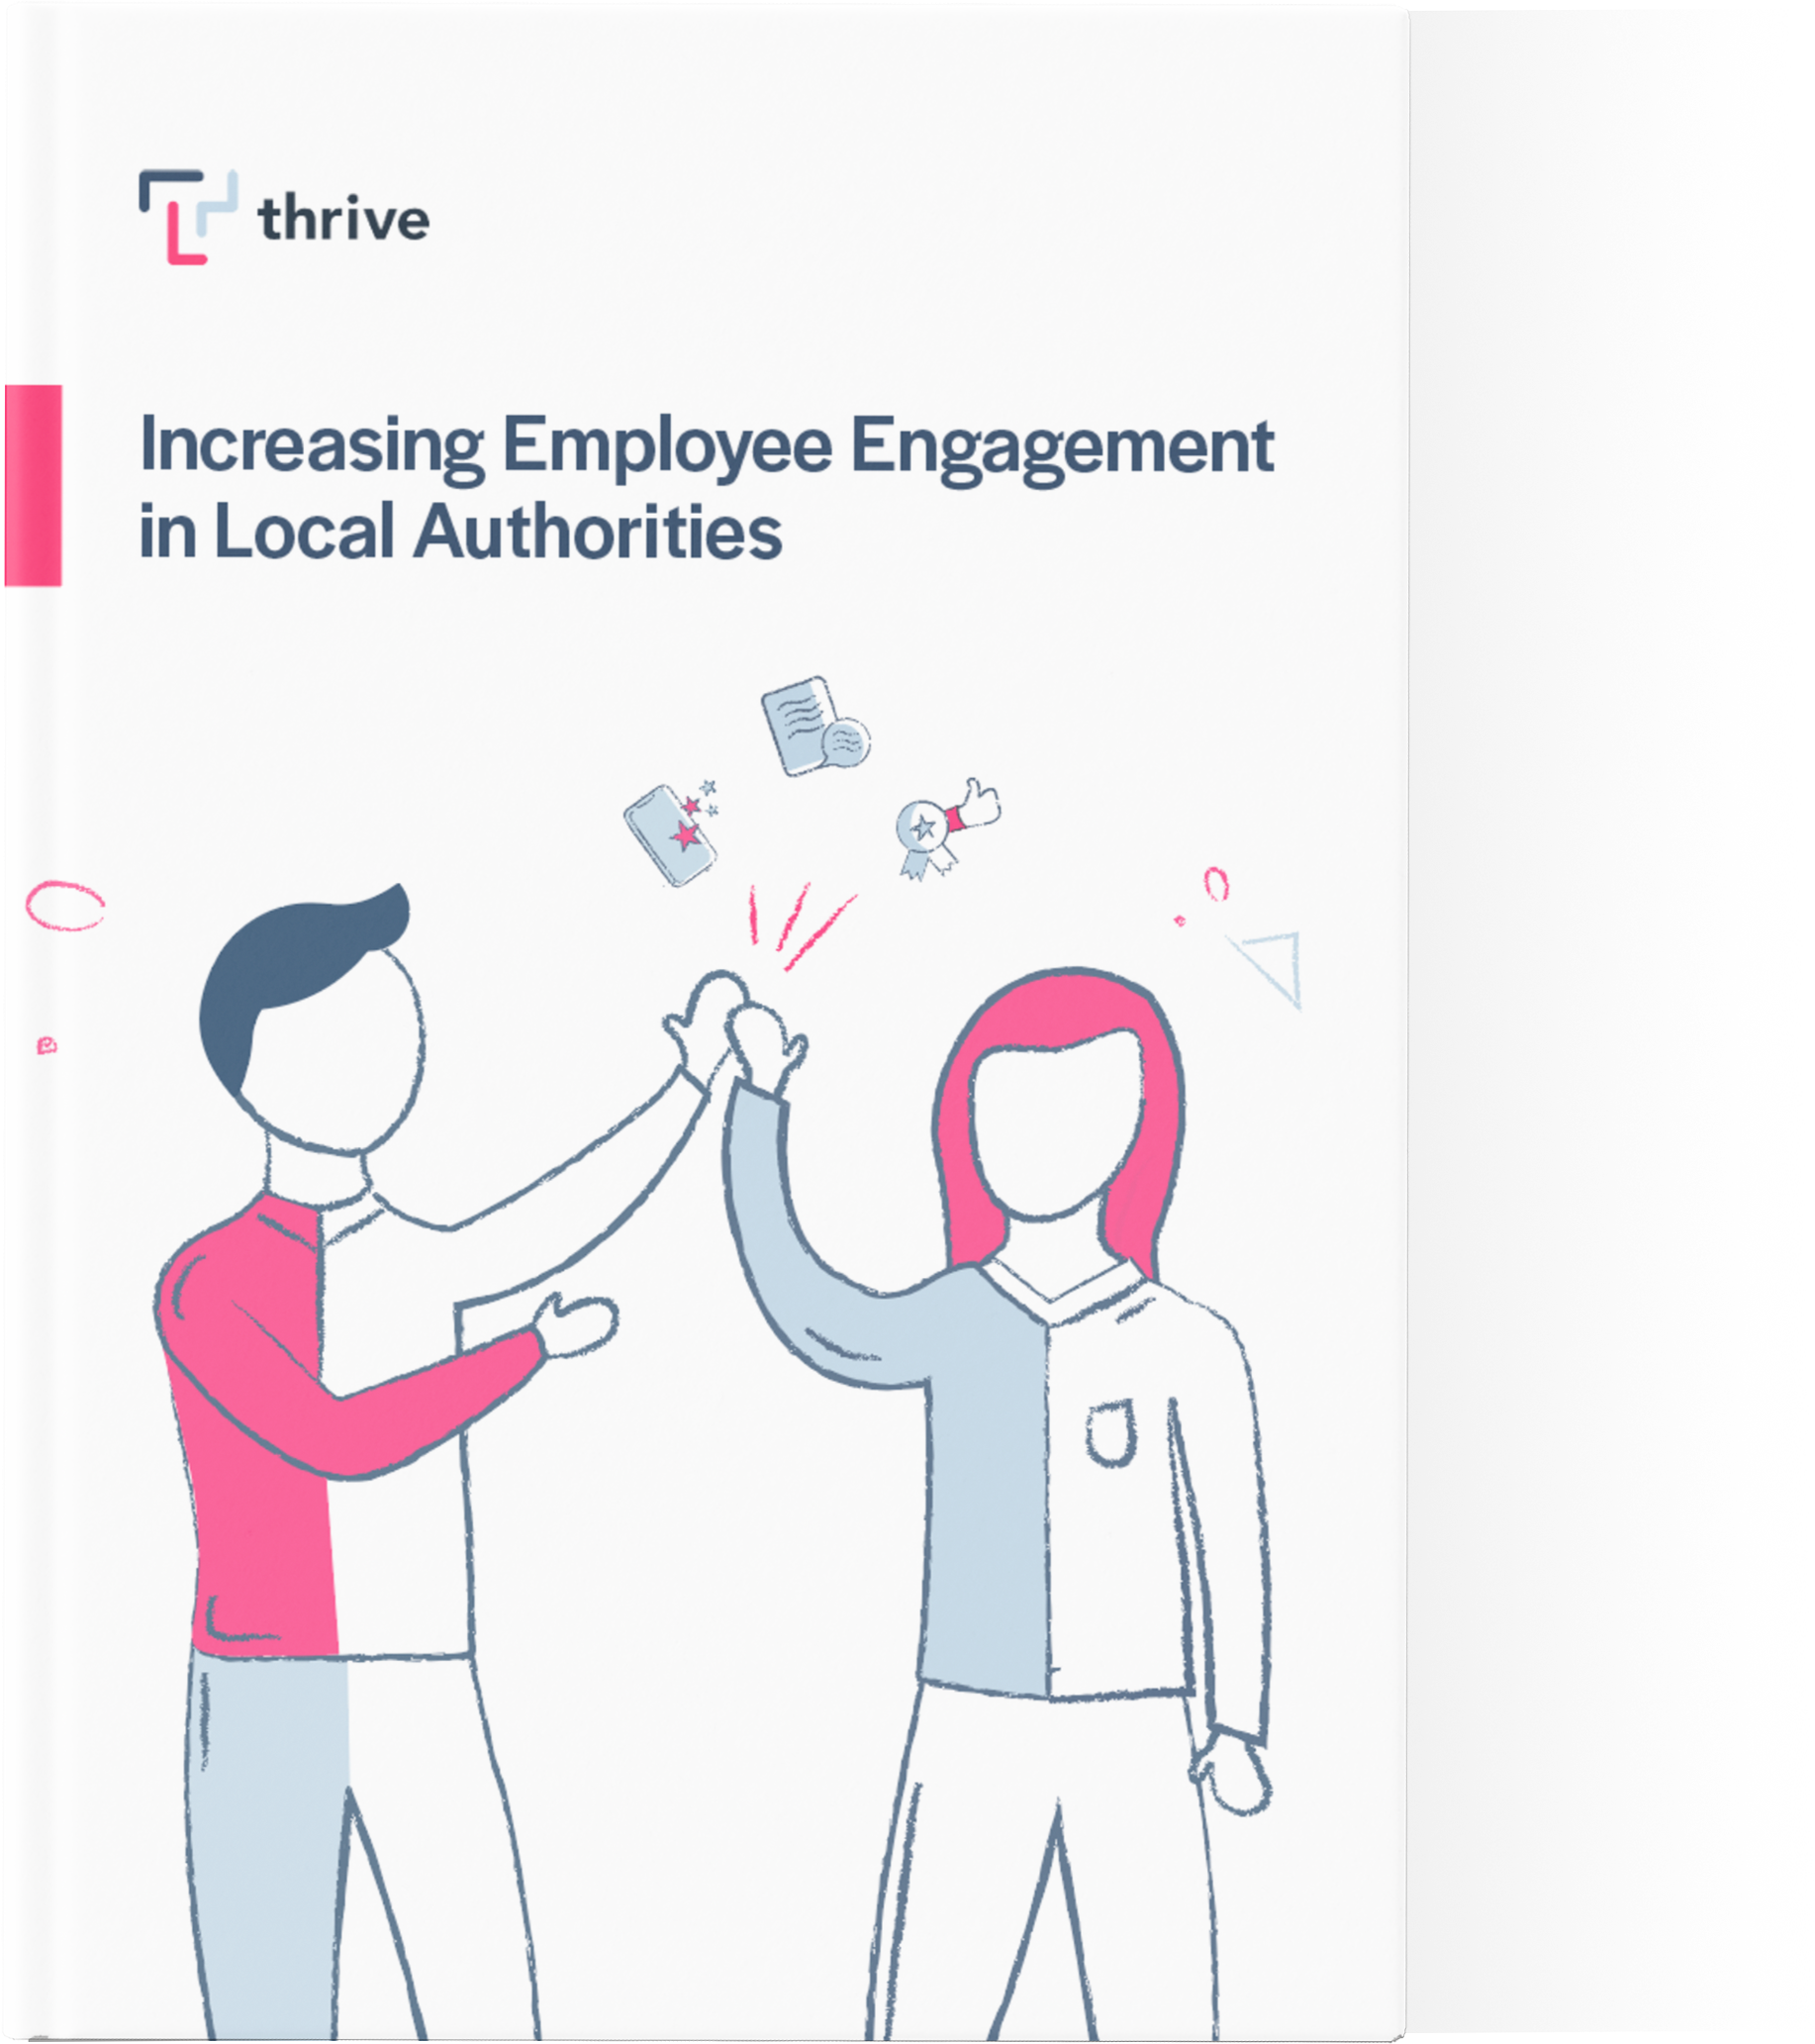 Thrive's eGuide on increasing employee engagement across local authorities